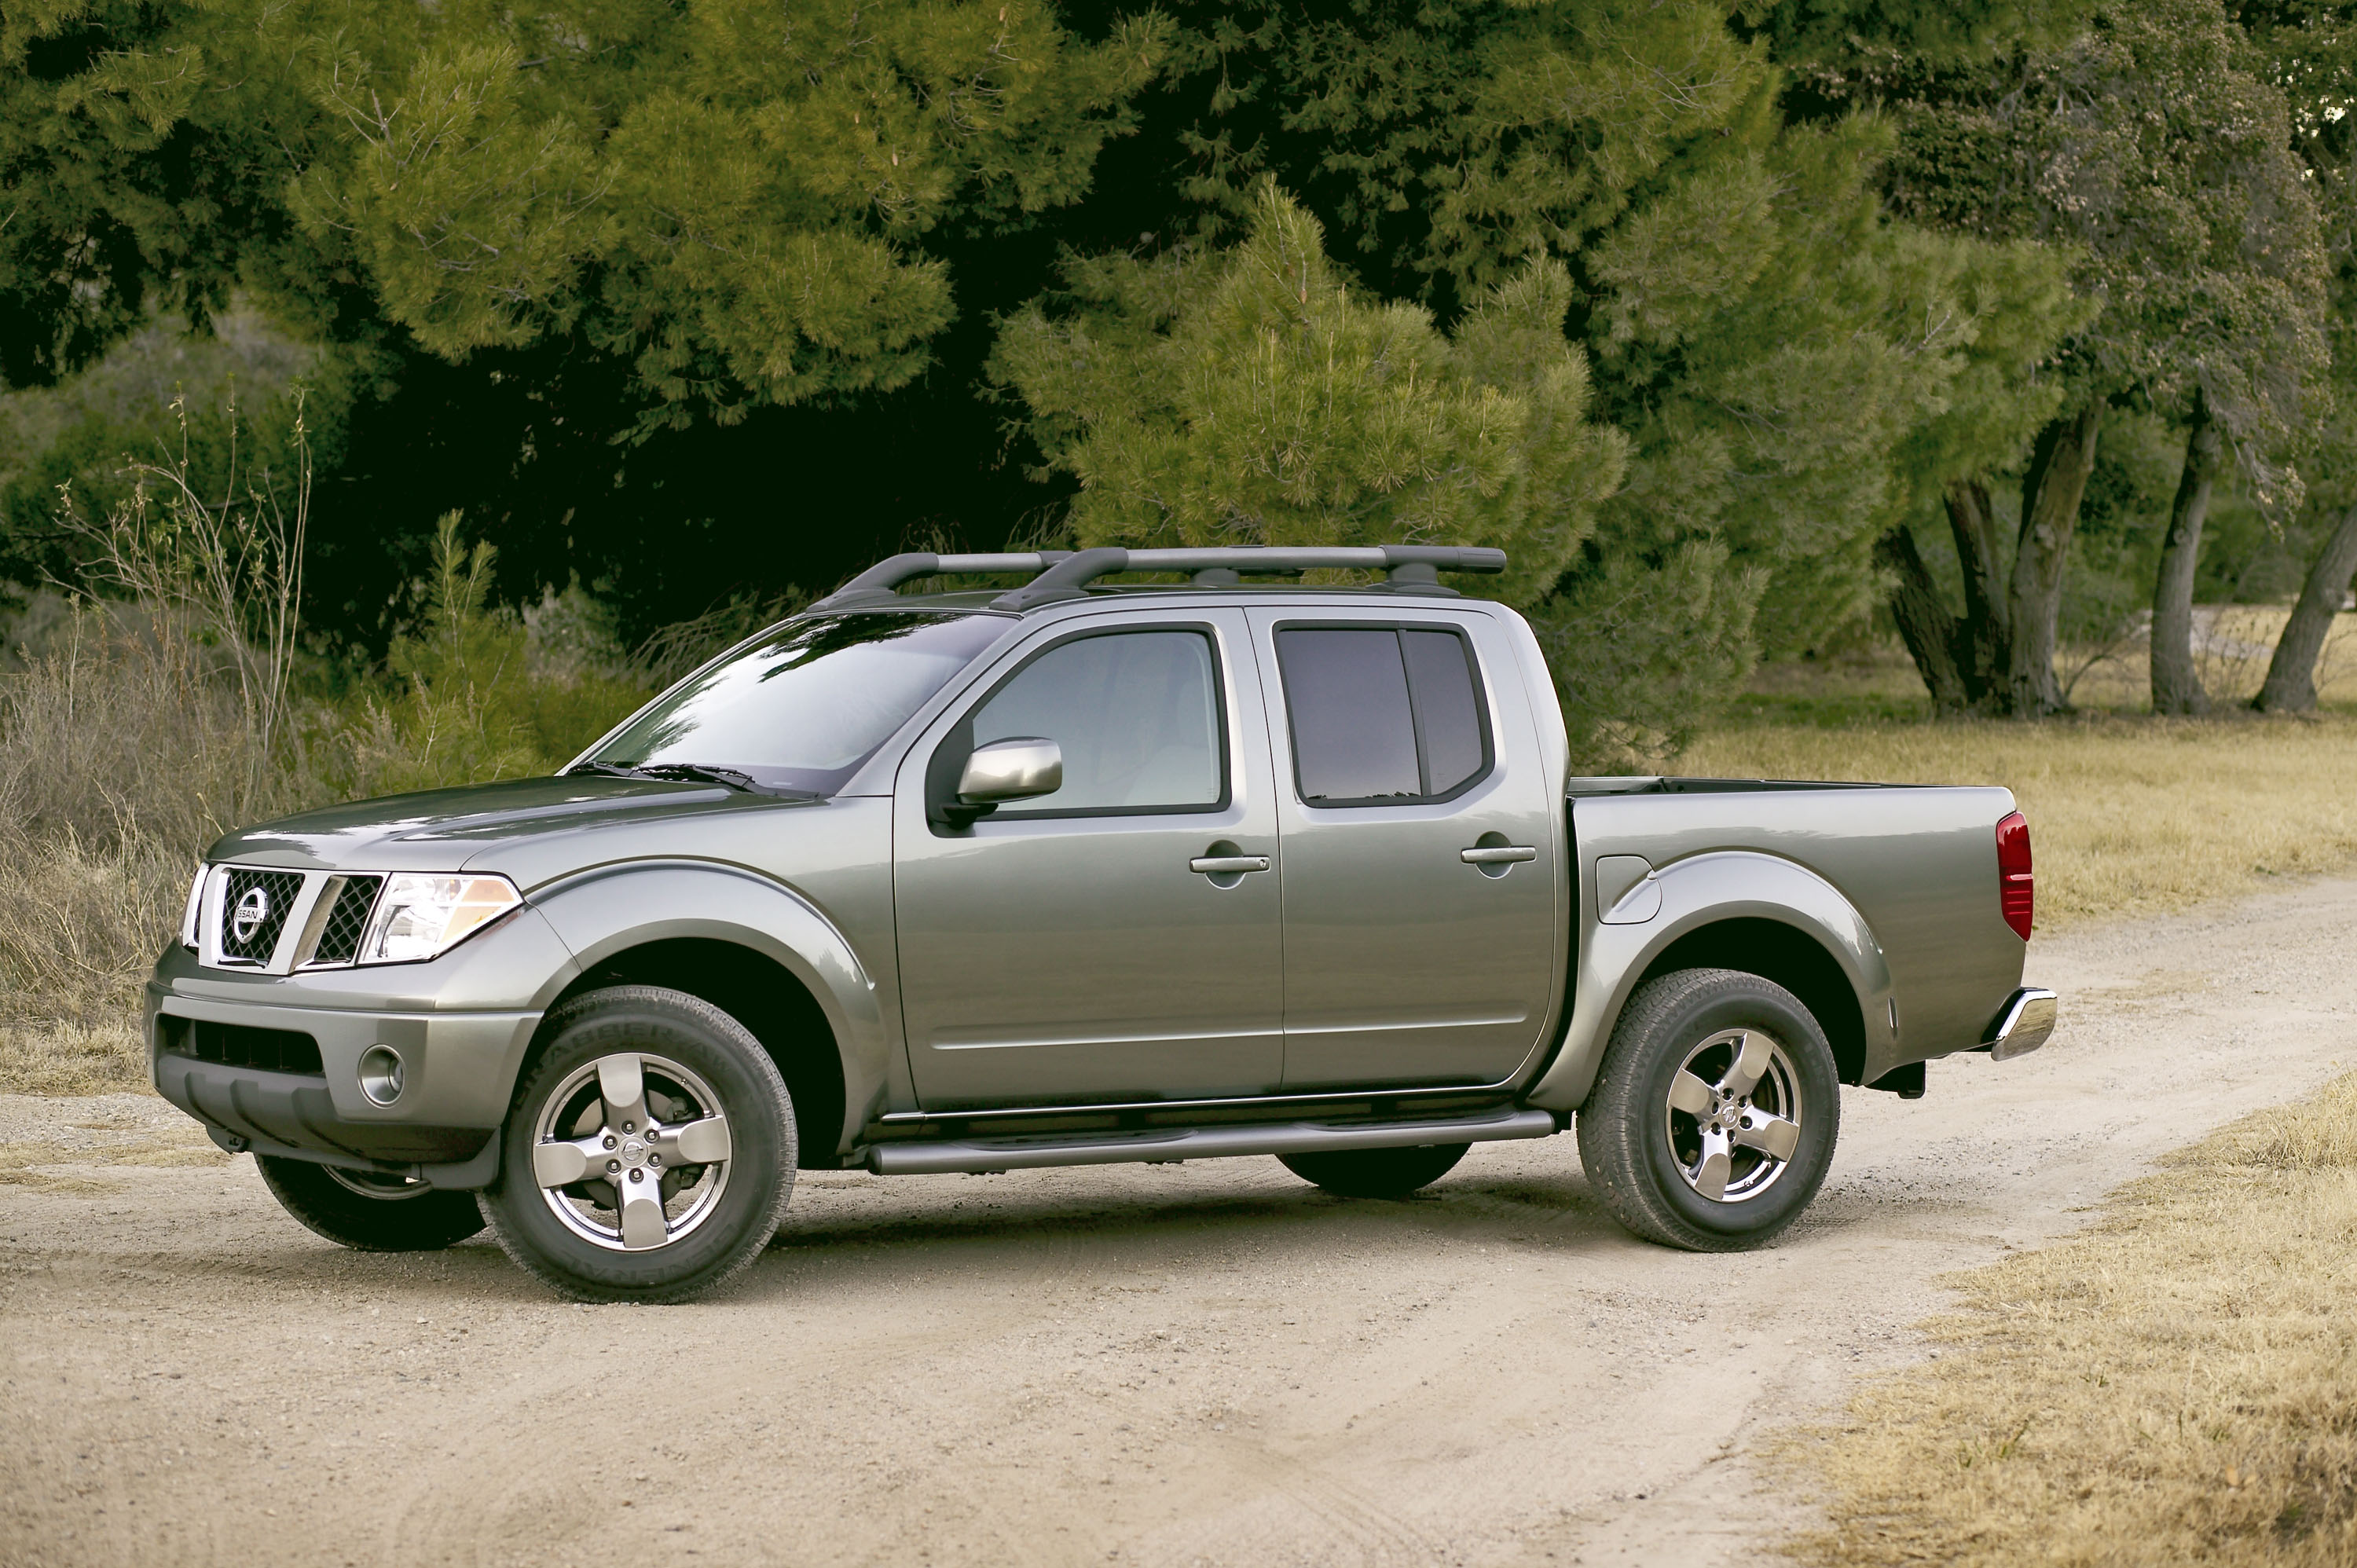 Nissan Frontier Crew Cab Long Bed Manual Transmission